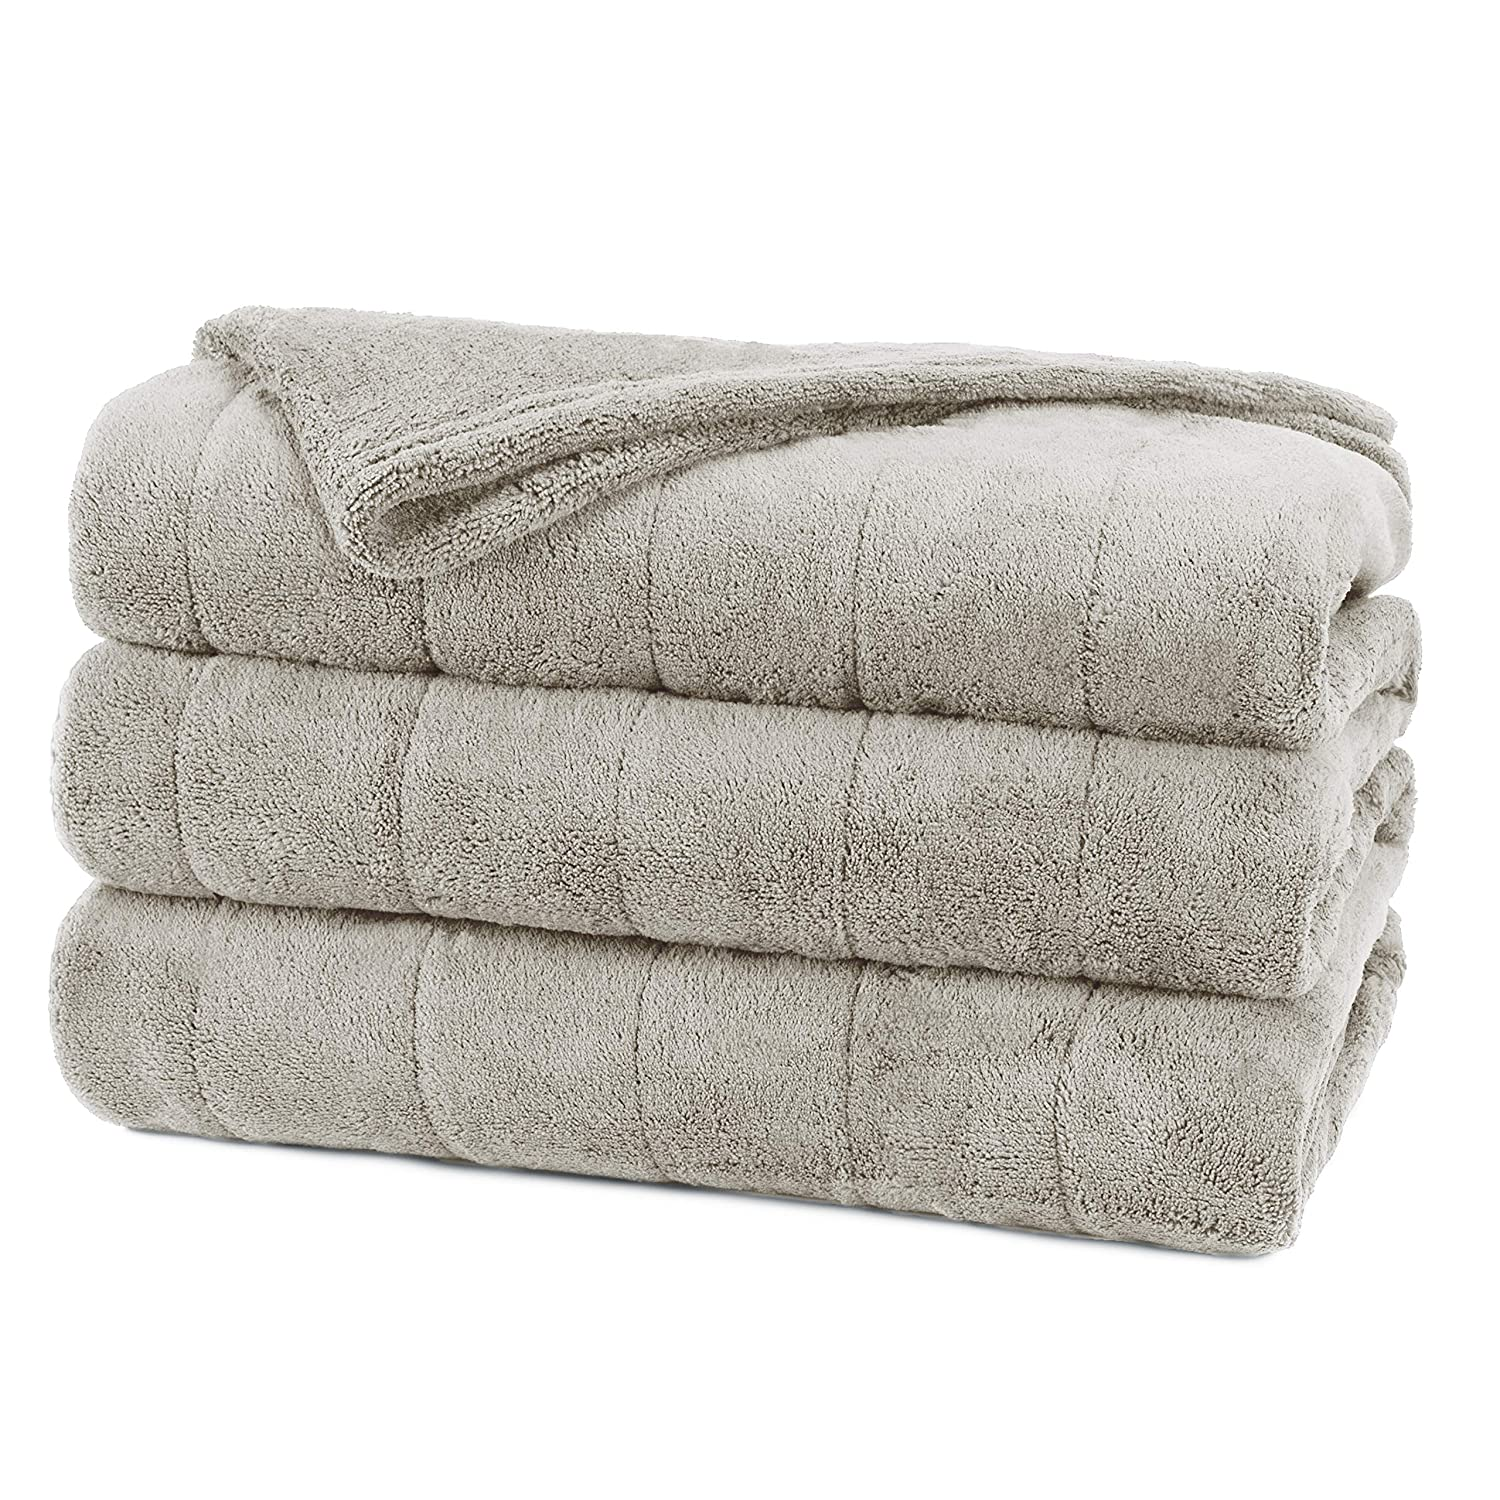 Sunbeam BSM9SFQ-RG29-17A50 Micro Plush Heated Blanket, Brushed Nickel, Full/Queen